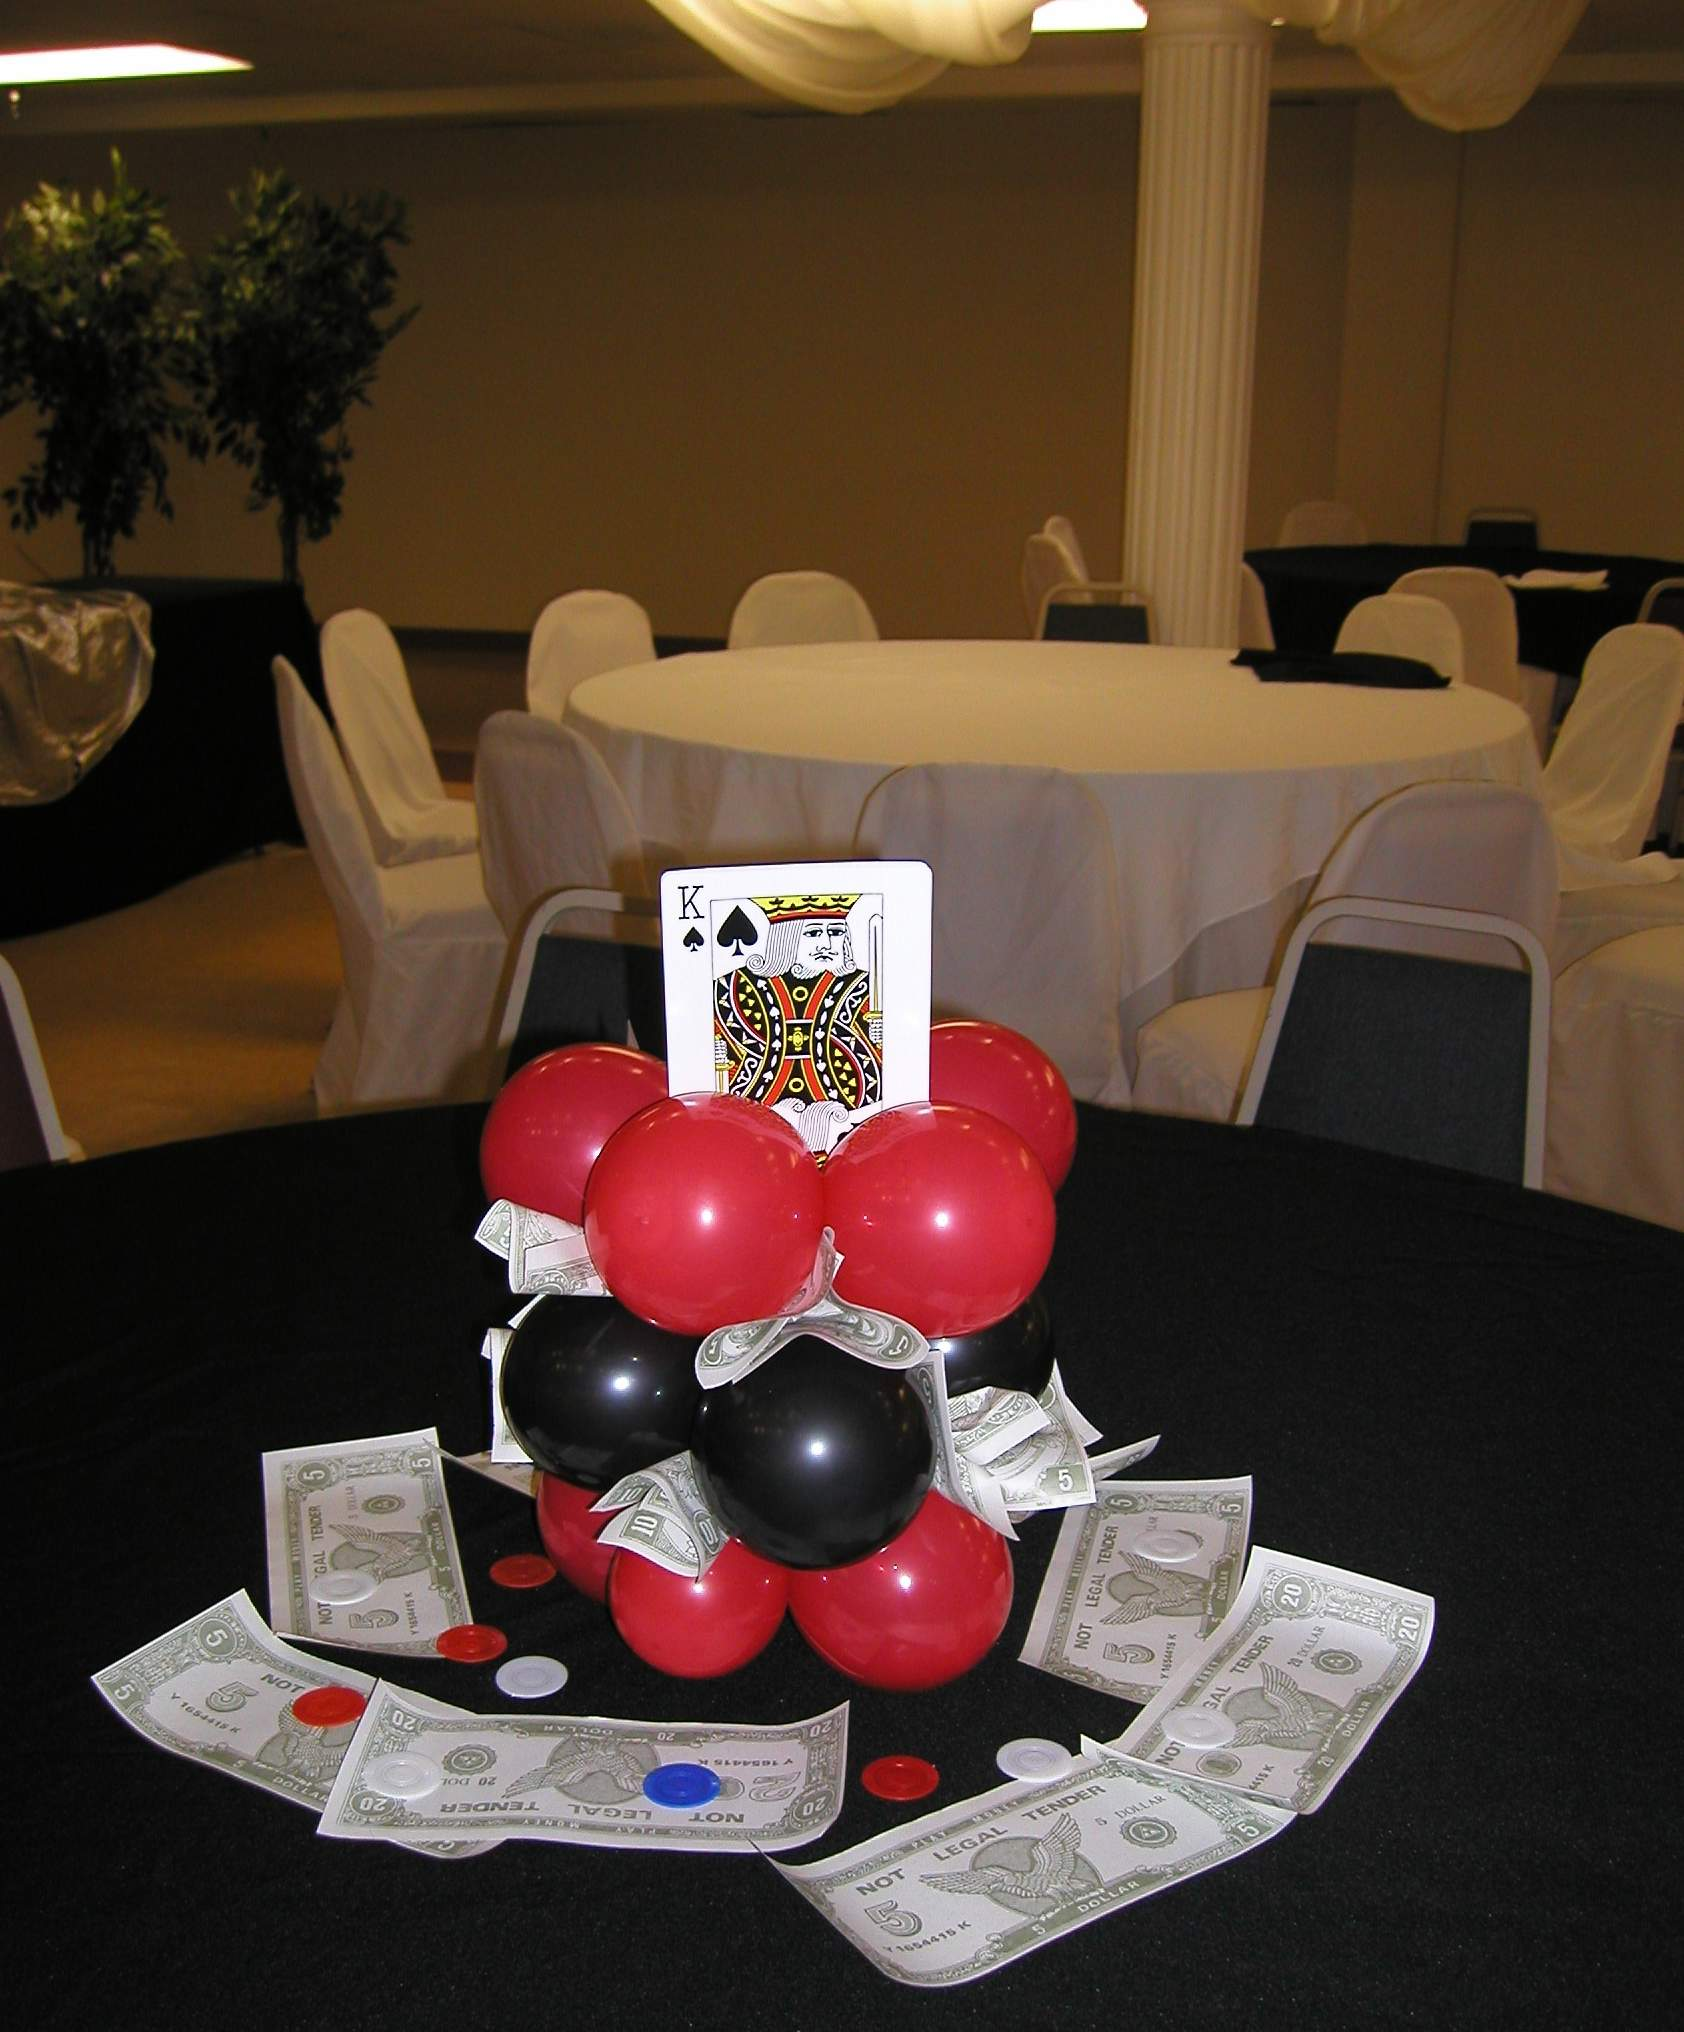 Casino Theme Party Decorations Ideas Part - 19: Casino ...